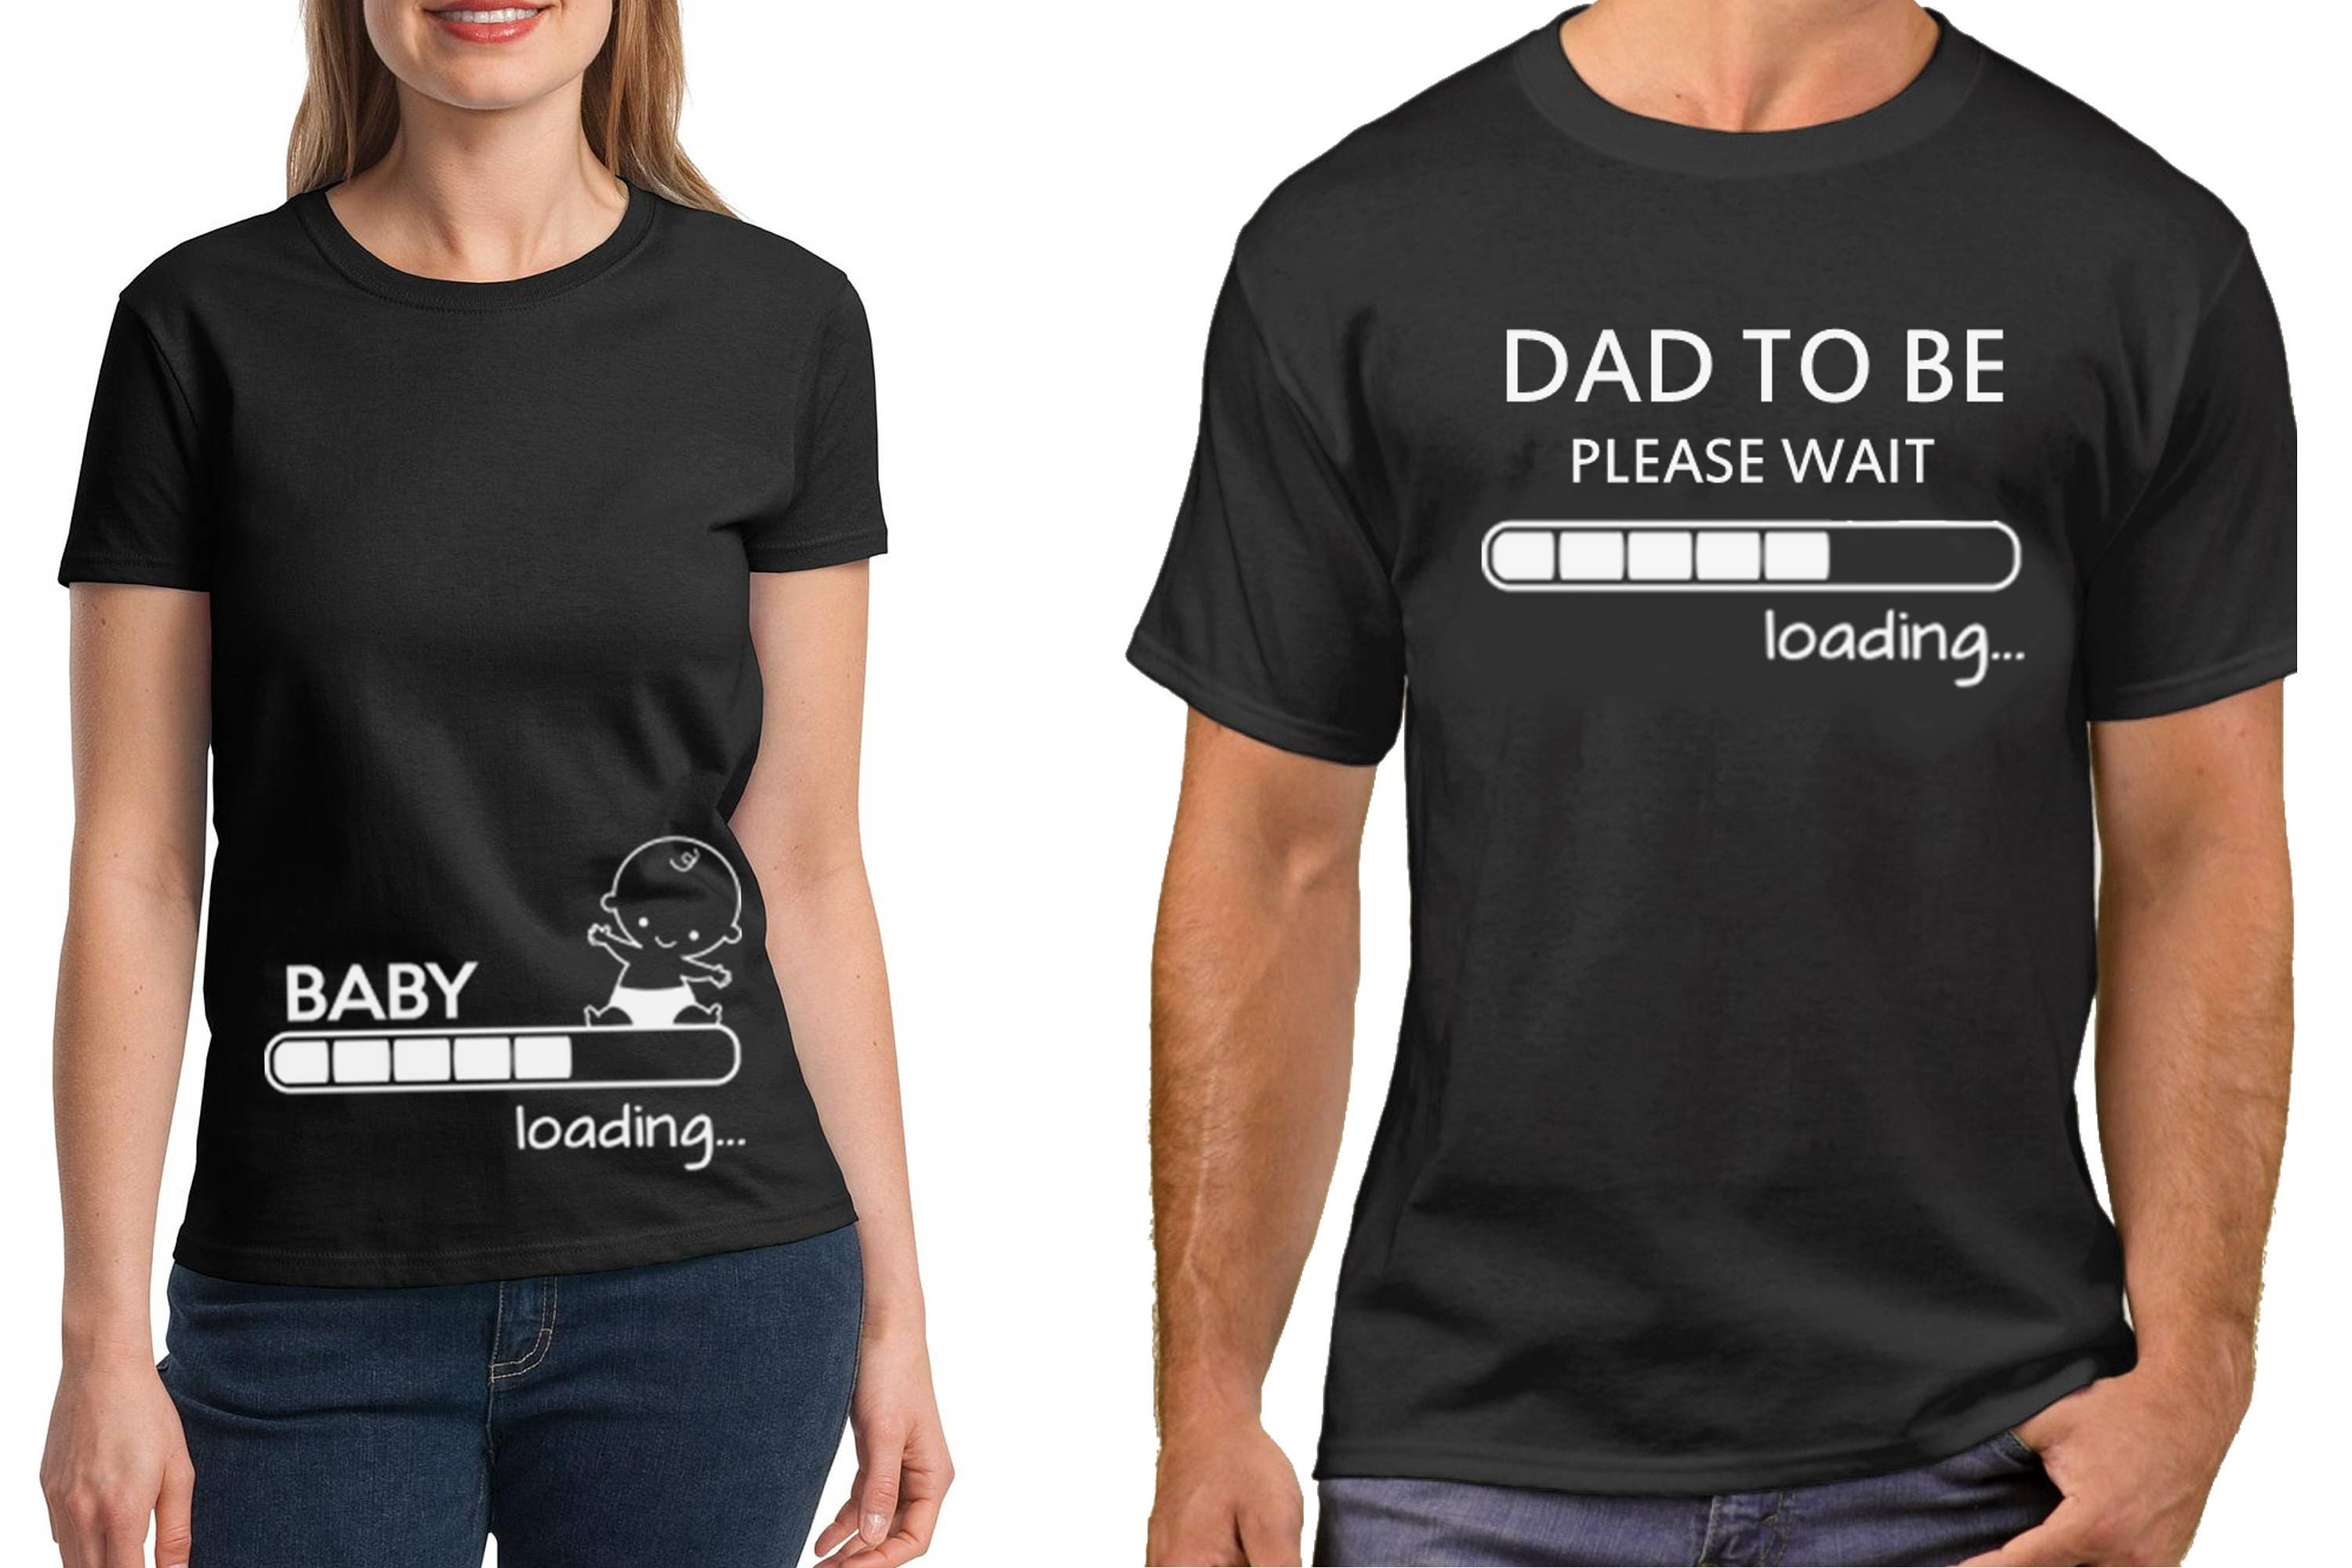 Pregnancy Funny Couple T Shirts Baby Loading Dad To Be T Shirt